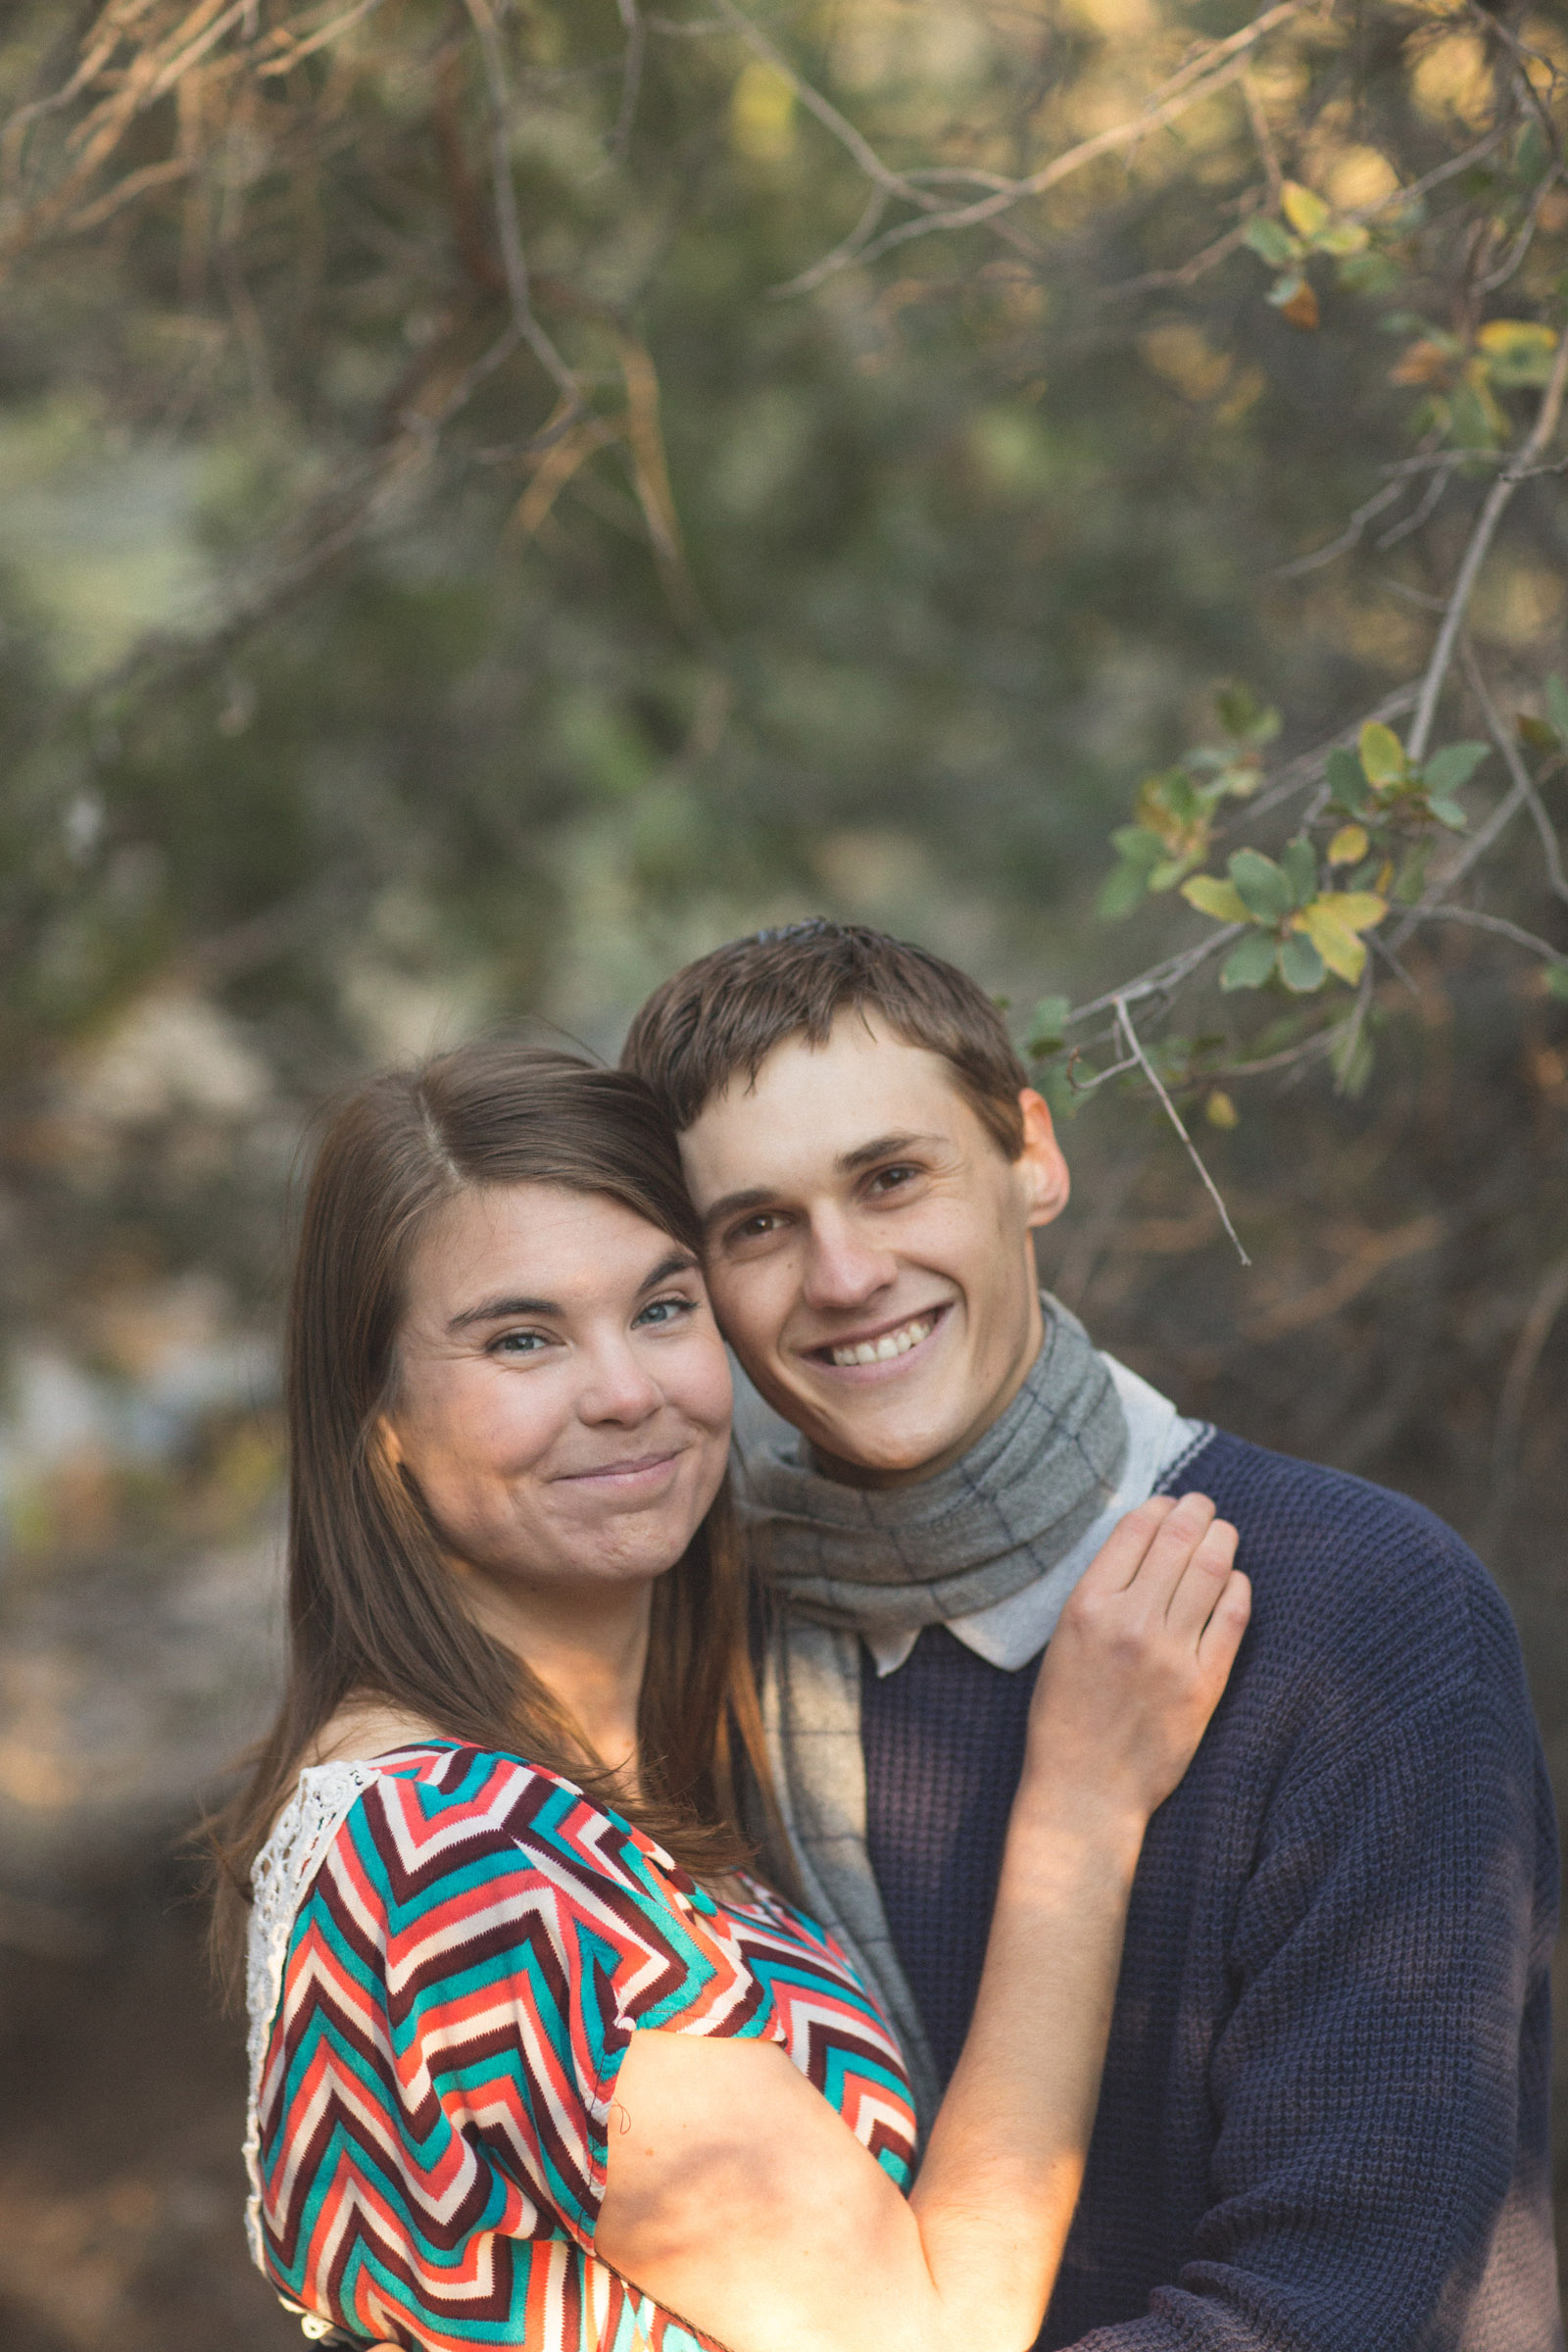 054-engagement-photographers-in-nm-farmington-and-albuquerque